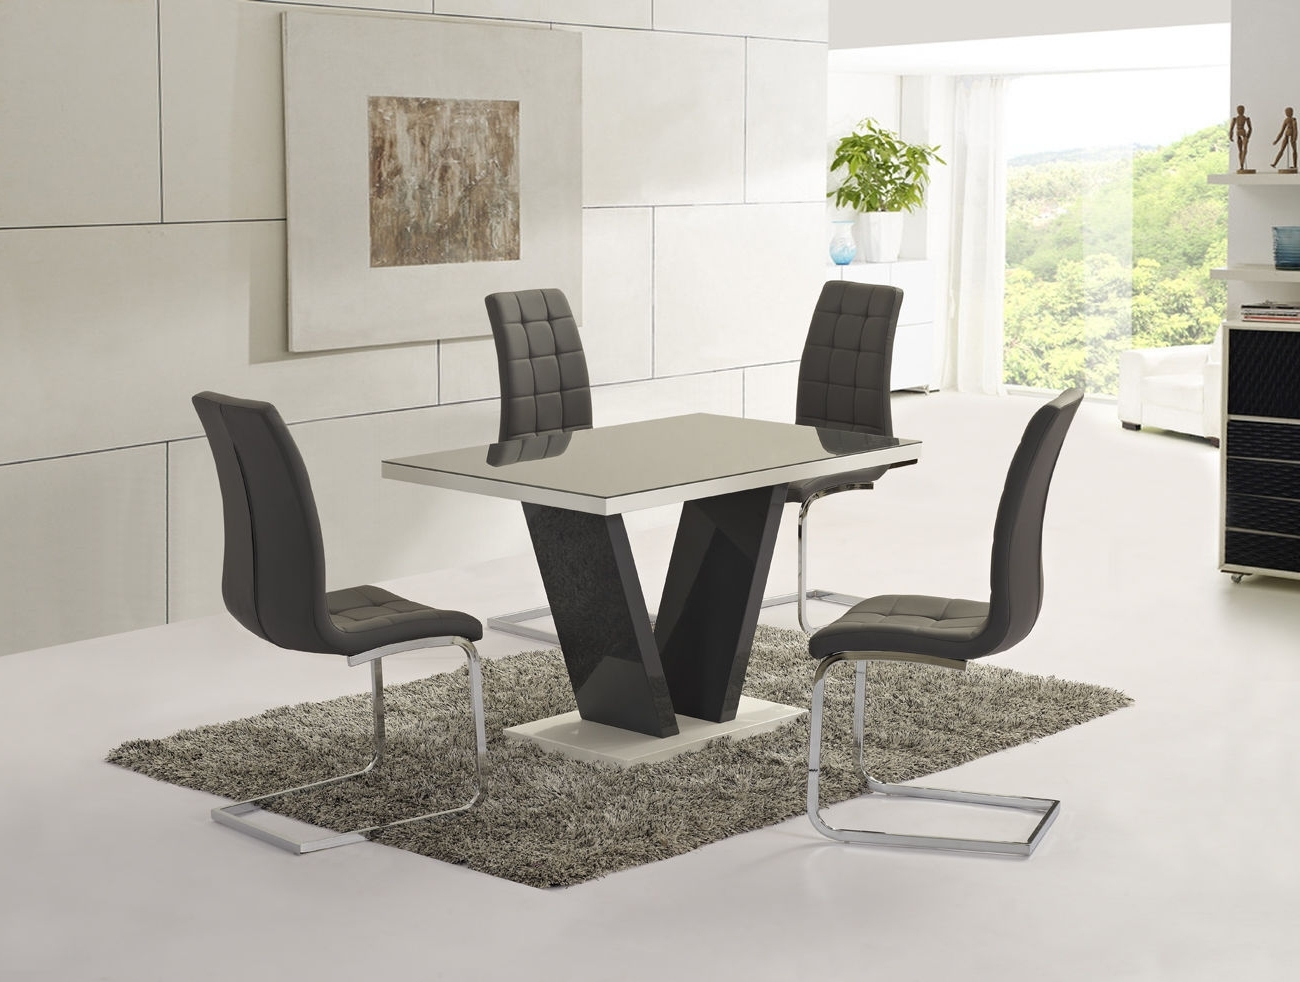 Ga Vico Gloss Grey Glass Top Designer 160Cm Dining Set – 4 6 Grey Intended For Most Popular White Glass Dining Tables And Chairs (View 8 of 25)